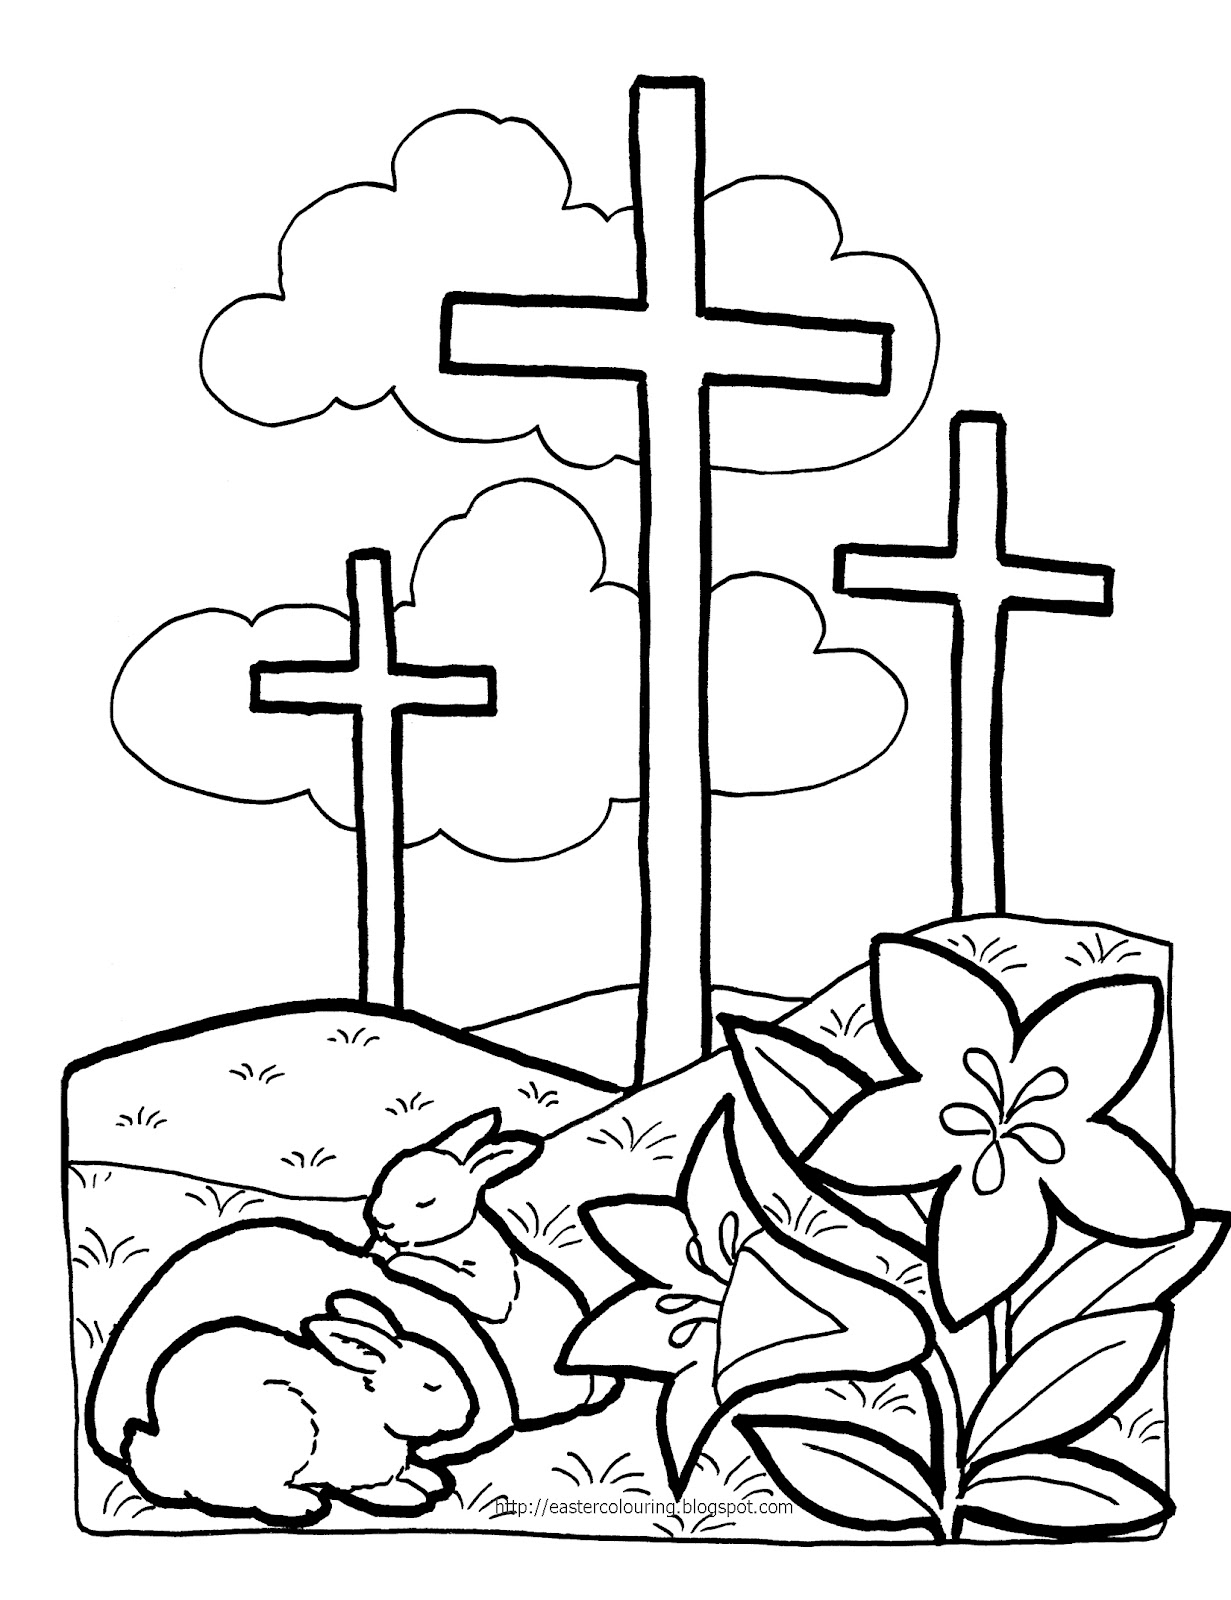 Easter colouring religious easter coloring pages for Free sunday school coloring pages for easter